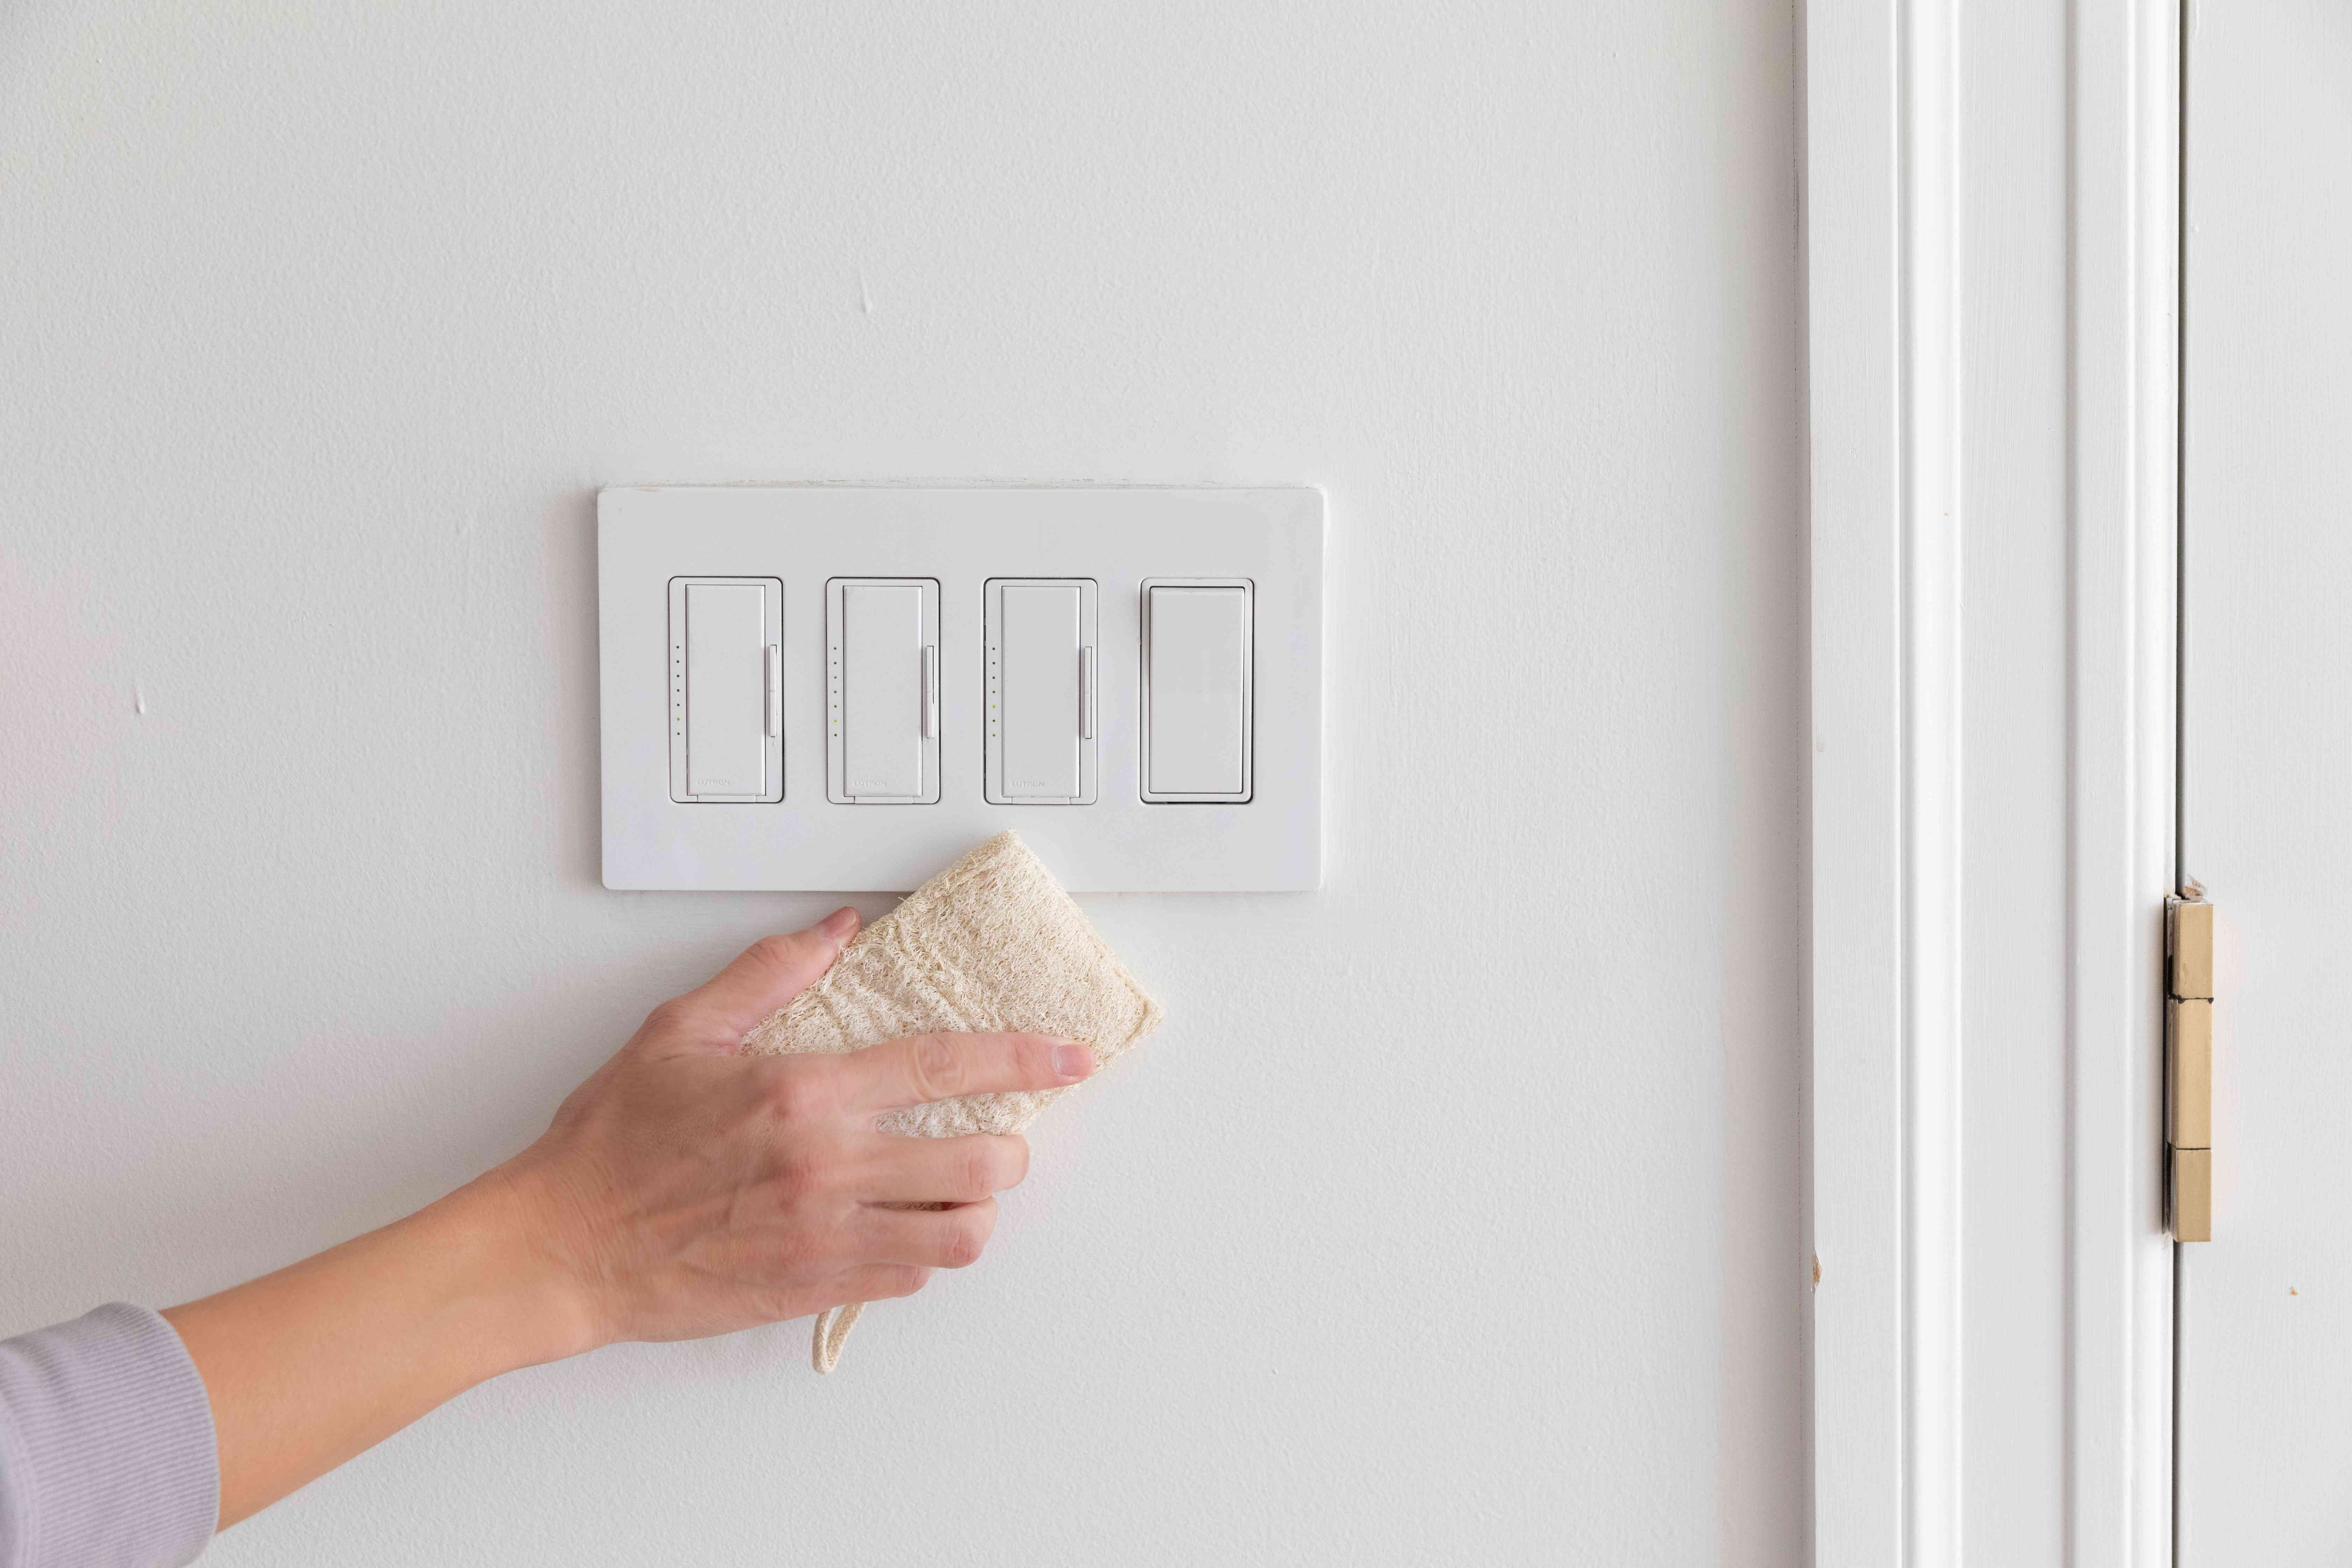 Sponge dipped in baking soda passing over light switch to clean heavy soiled areas